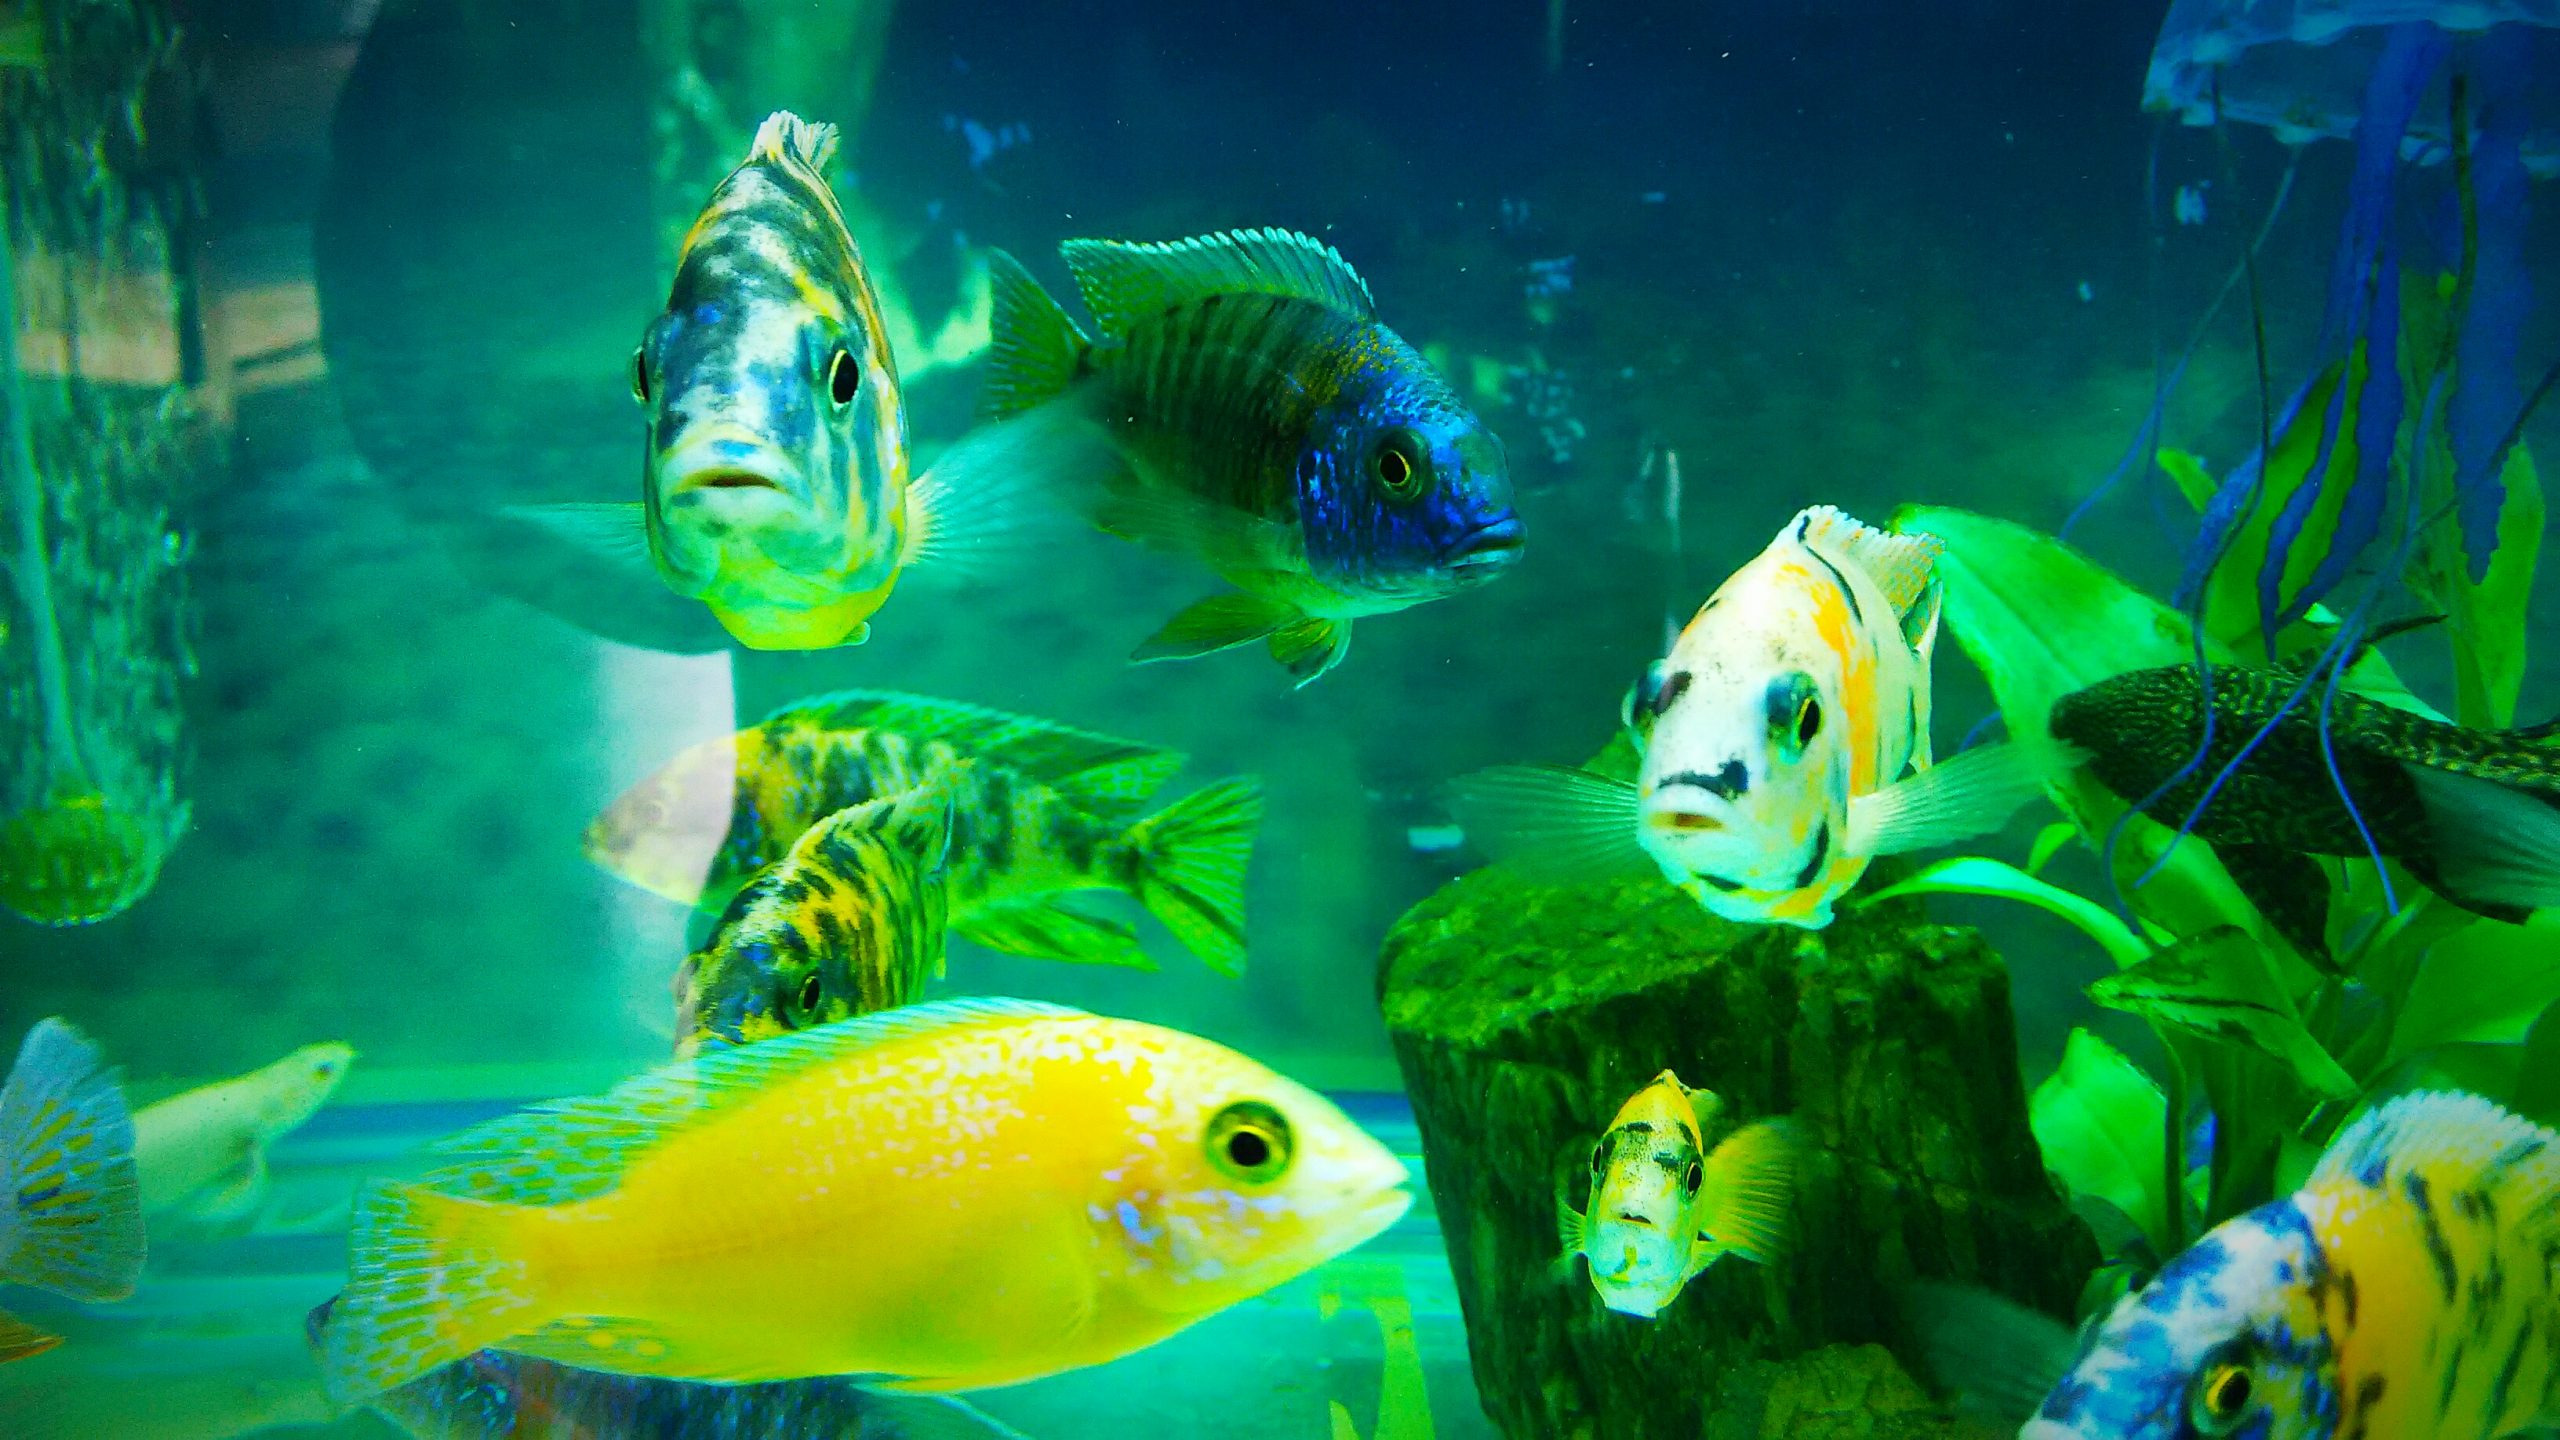 Beautiful and colorful fishes in the aquarium